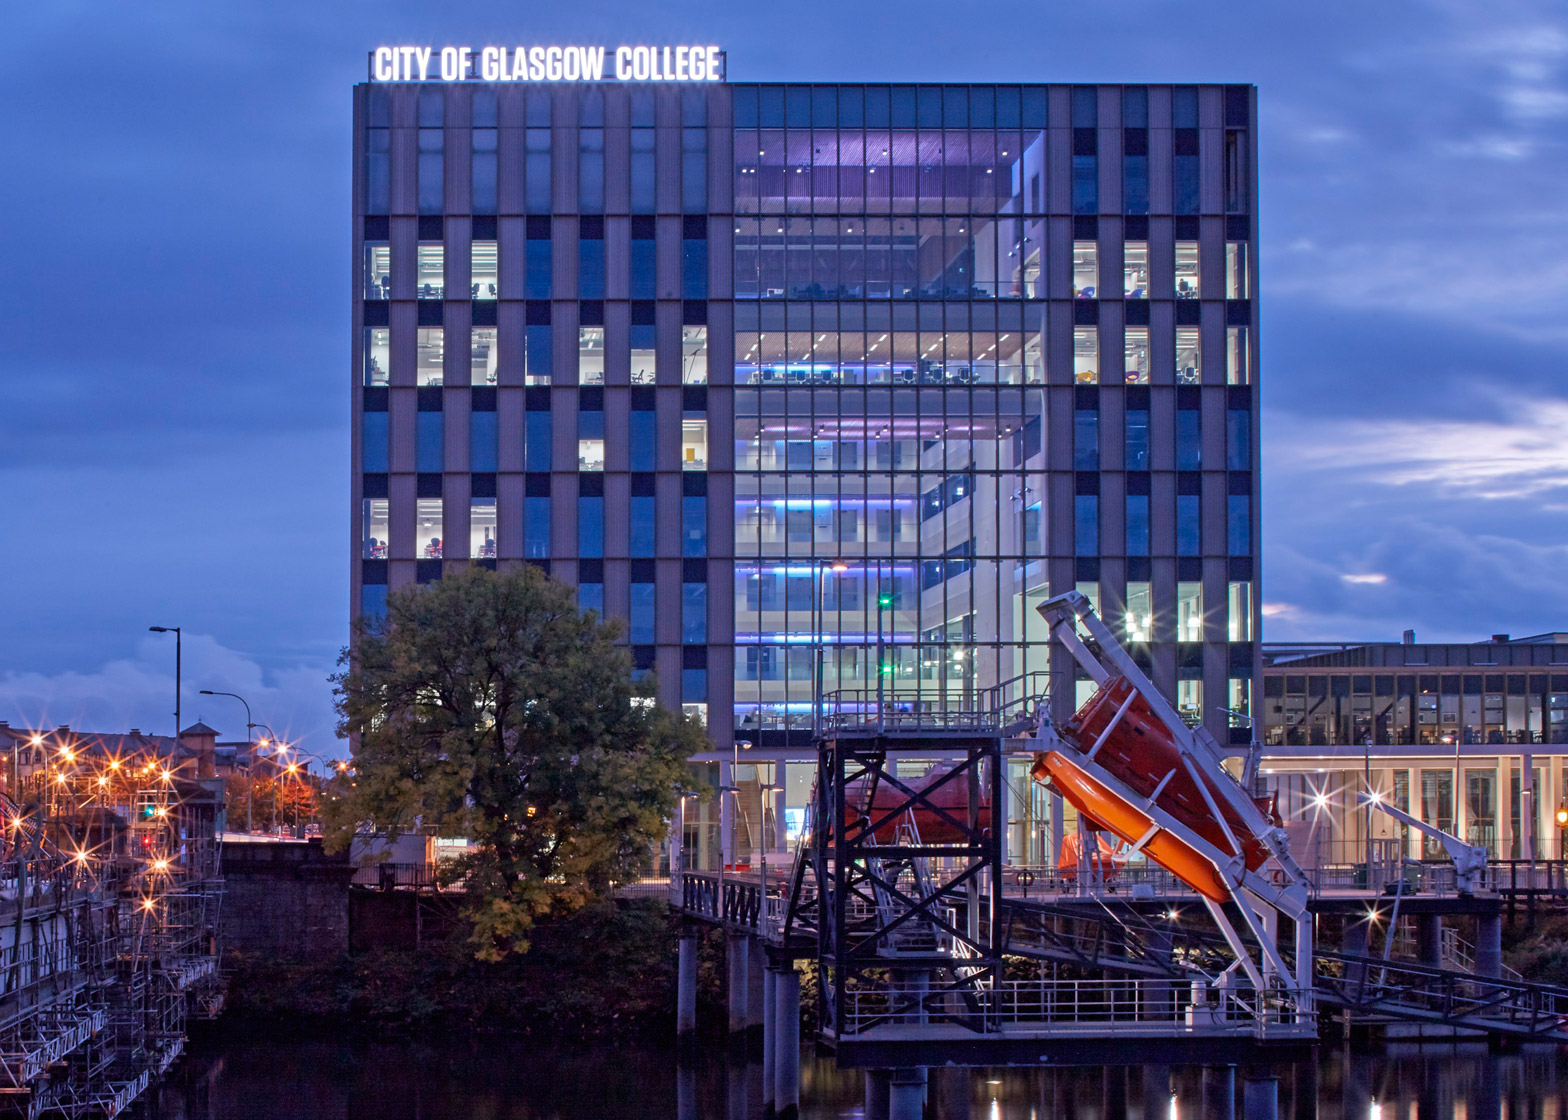 City of Glasgow College – Riverside Campus by Reiach and Hall and Michael Laird Architects